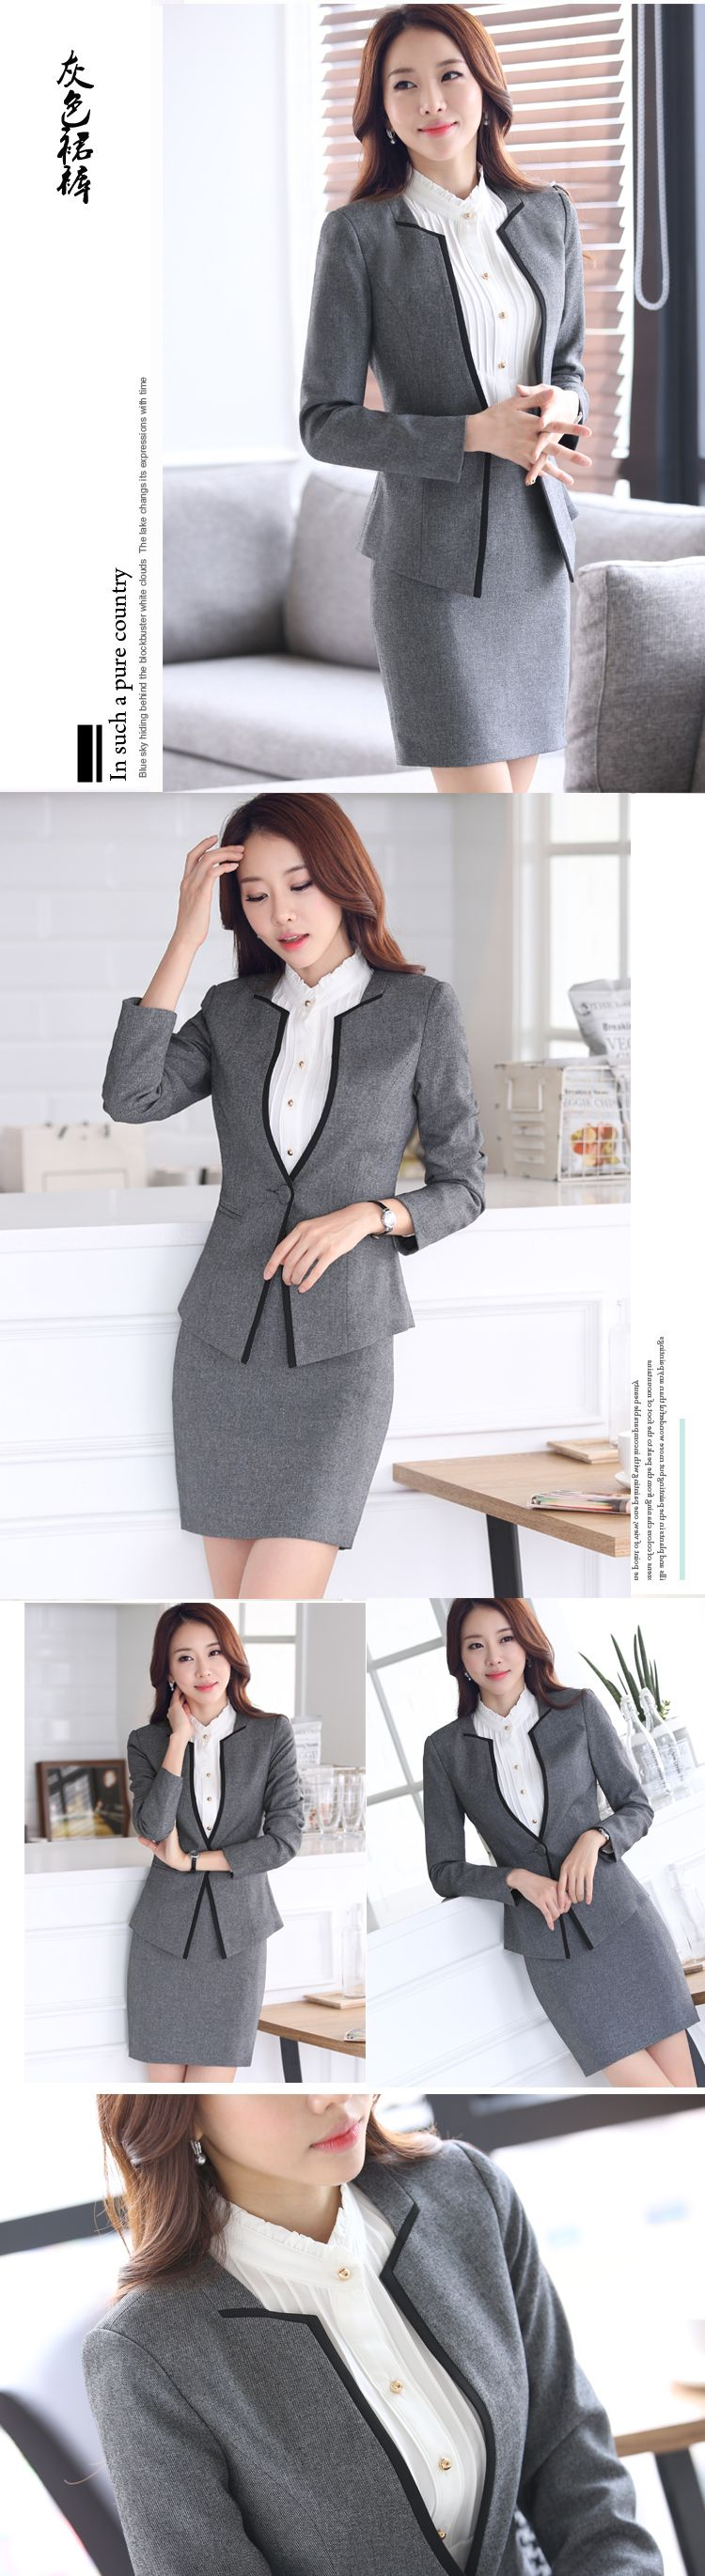 2016 New Formal Women Suits With Pant For Office Las Business V Neck Suit Red Black Gray Professional Workwear Clothes Nice Plus Size Clothing